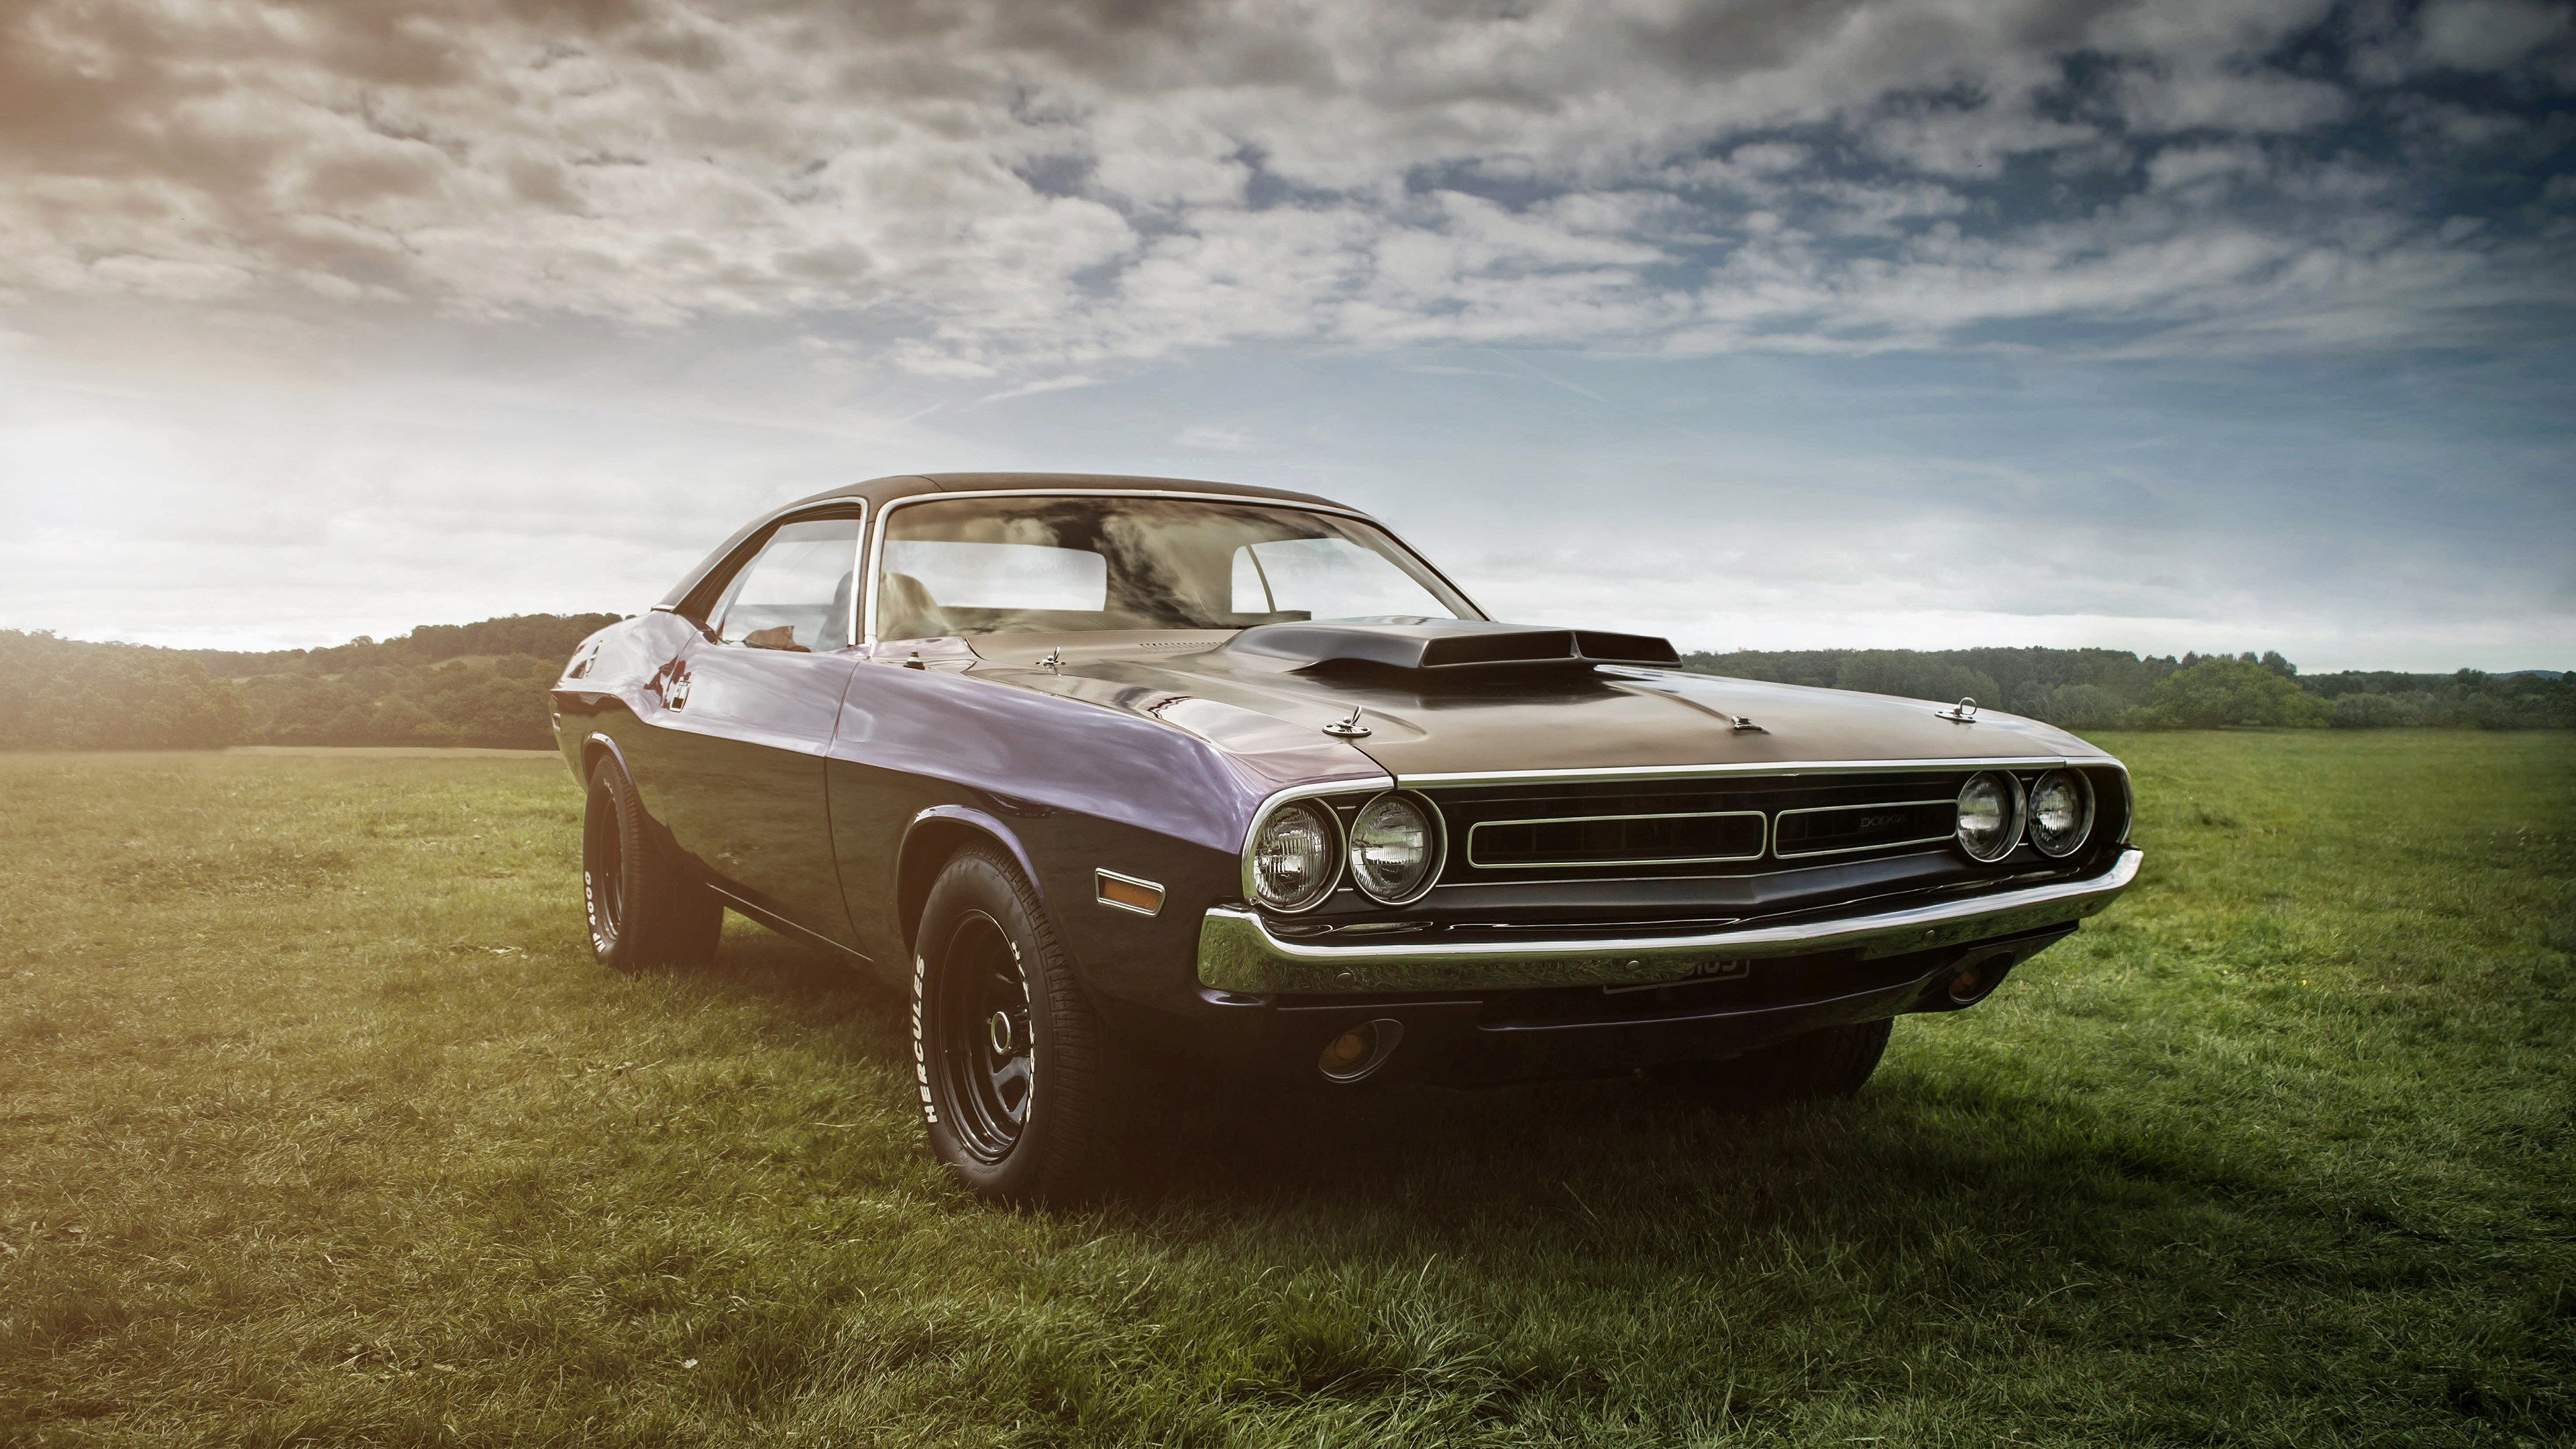 4k Pc Wallpaper Hd 3840x2160 Dodge Challenger Classic Cars Usa Car Wallpapers